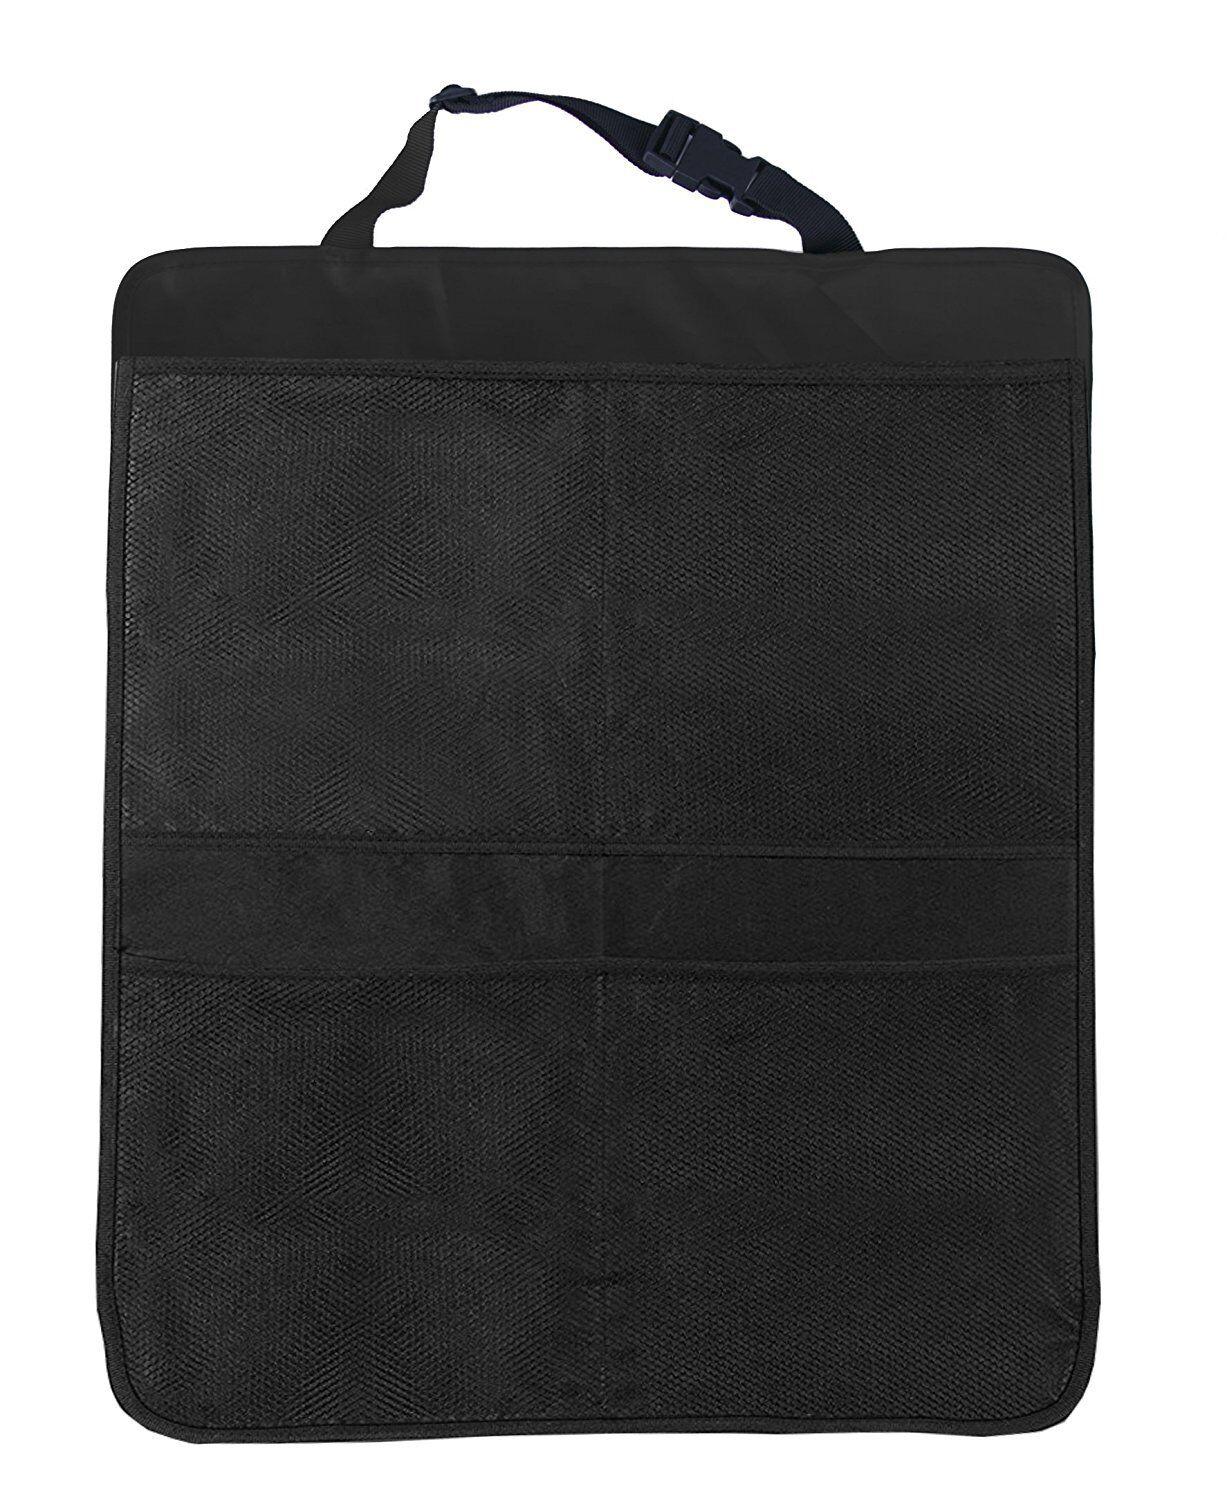 Купить lebogner LOR-A-1011 - Kick Mat Auto Seat Back Protectors + 4 Large Organizer Pockets By Lebogner